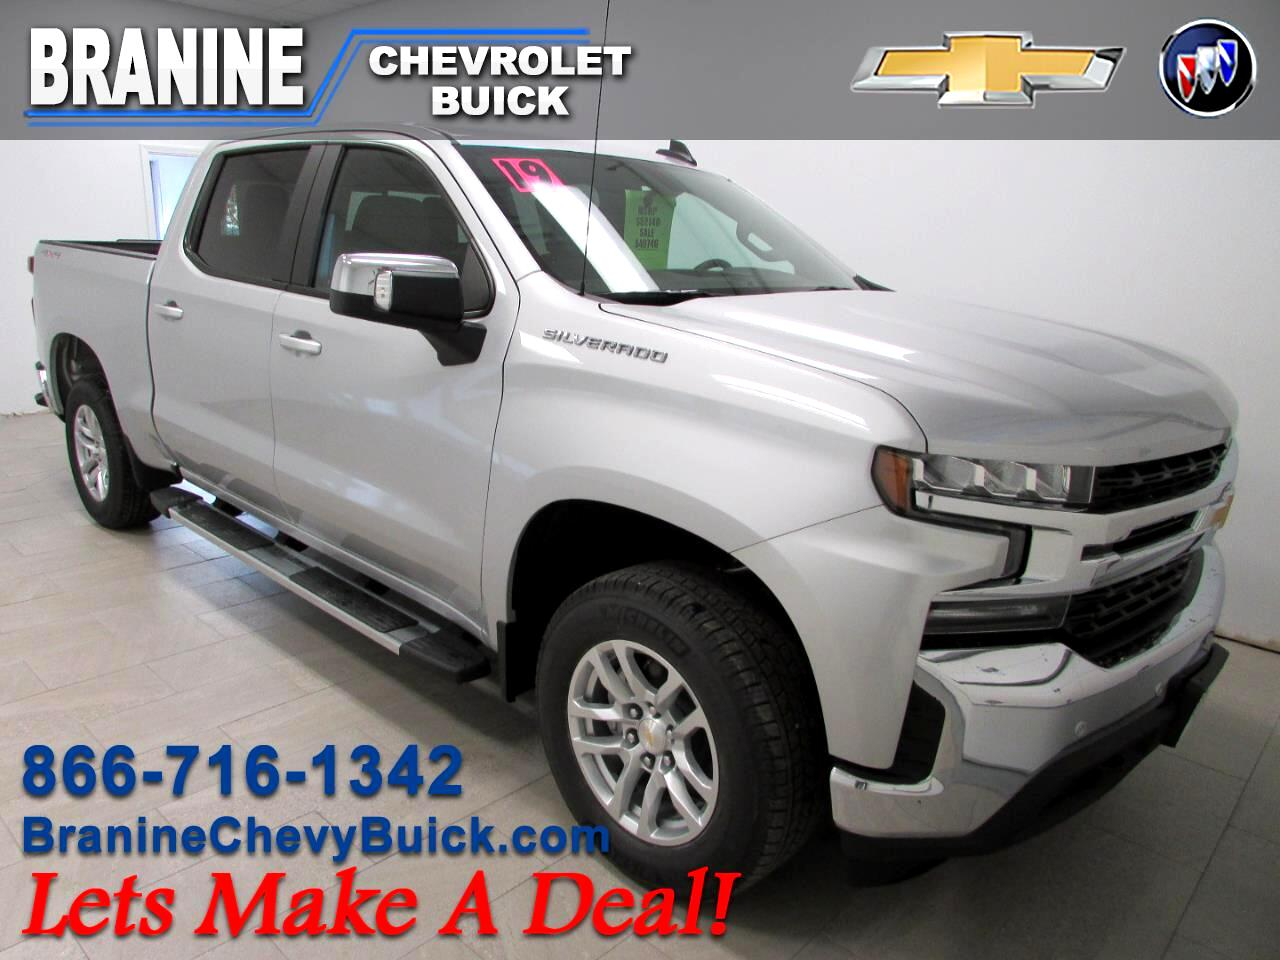 Used Cars For Sale Osage City Ks 66523 Branine Chevrolet Buick 1953 Ford Crew Cab 2019 Silverado 1500 4wd 147 Lt